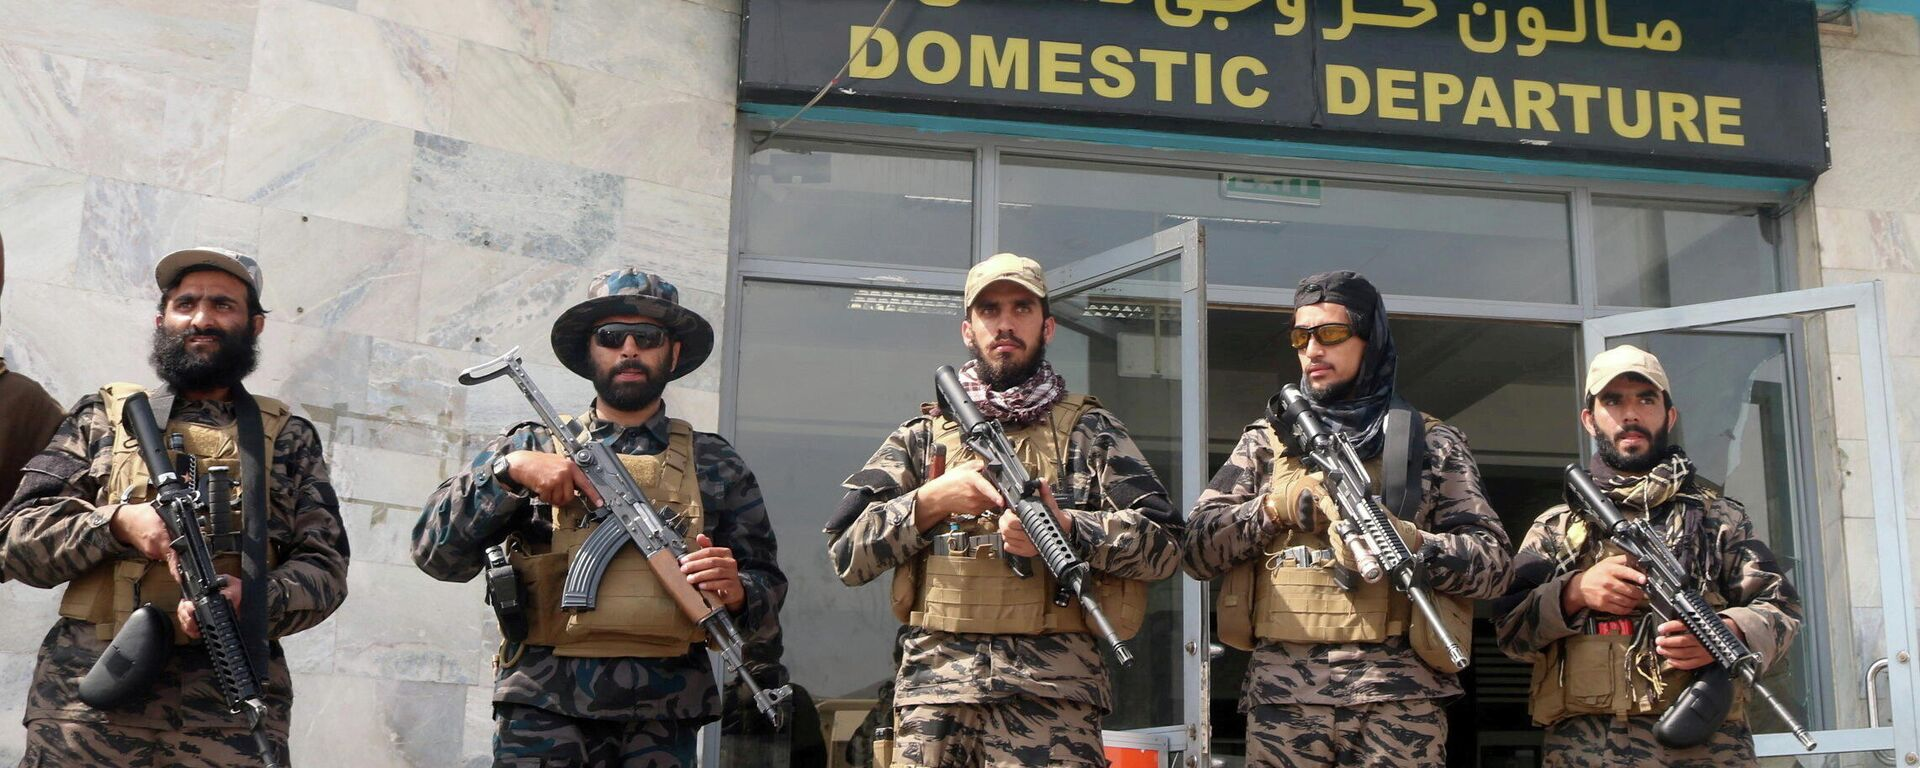 Taliban forces stand guard a day after the U.S. troops withdrawal from Hamid Karzai International Airport in Kabul, Afghanistan August 31, 2021. - Sputnik International, 1920, 15.09.2021